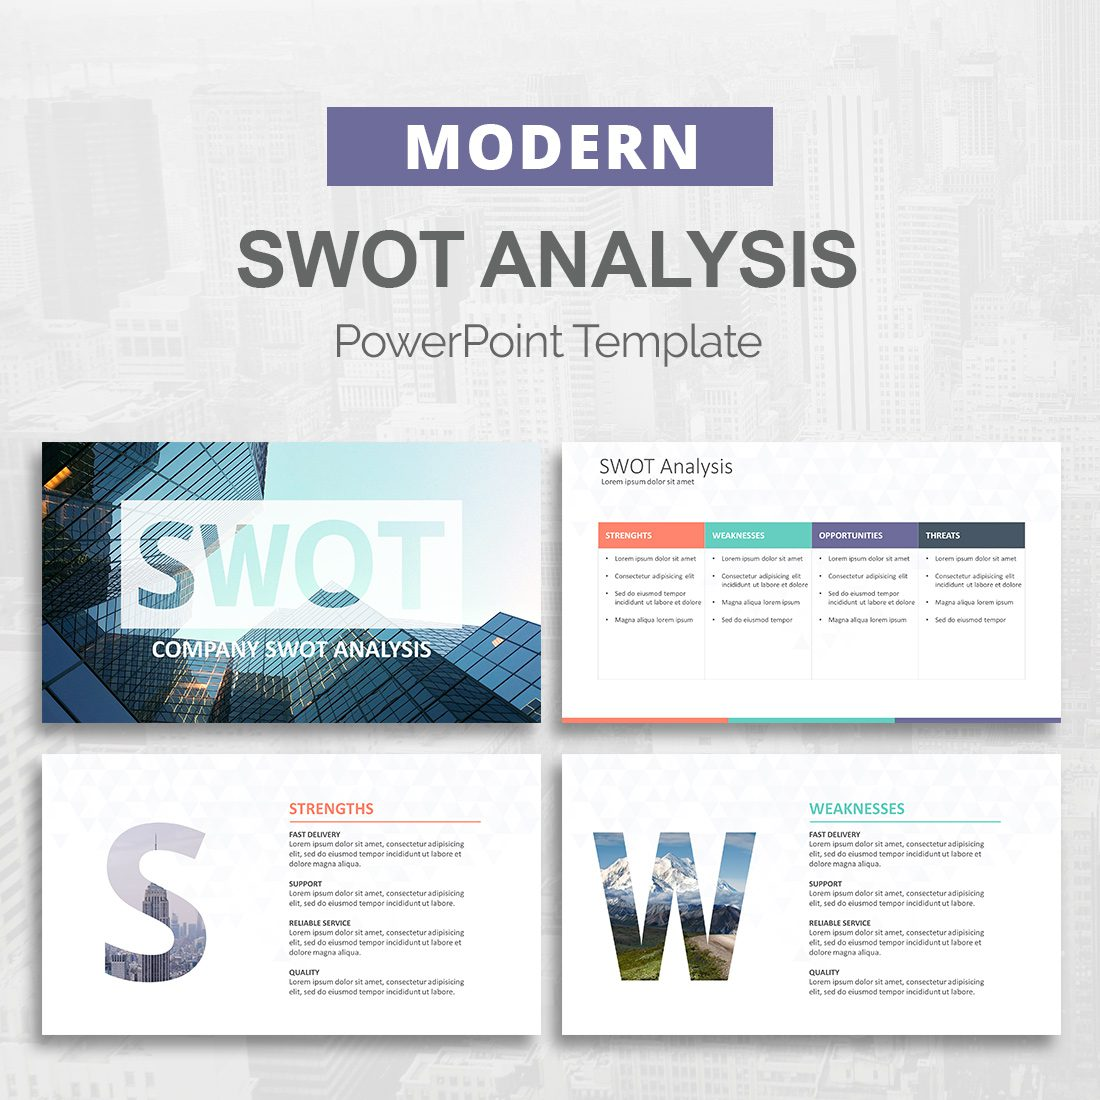 swot analysis powerpoint template slideson